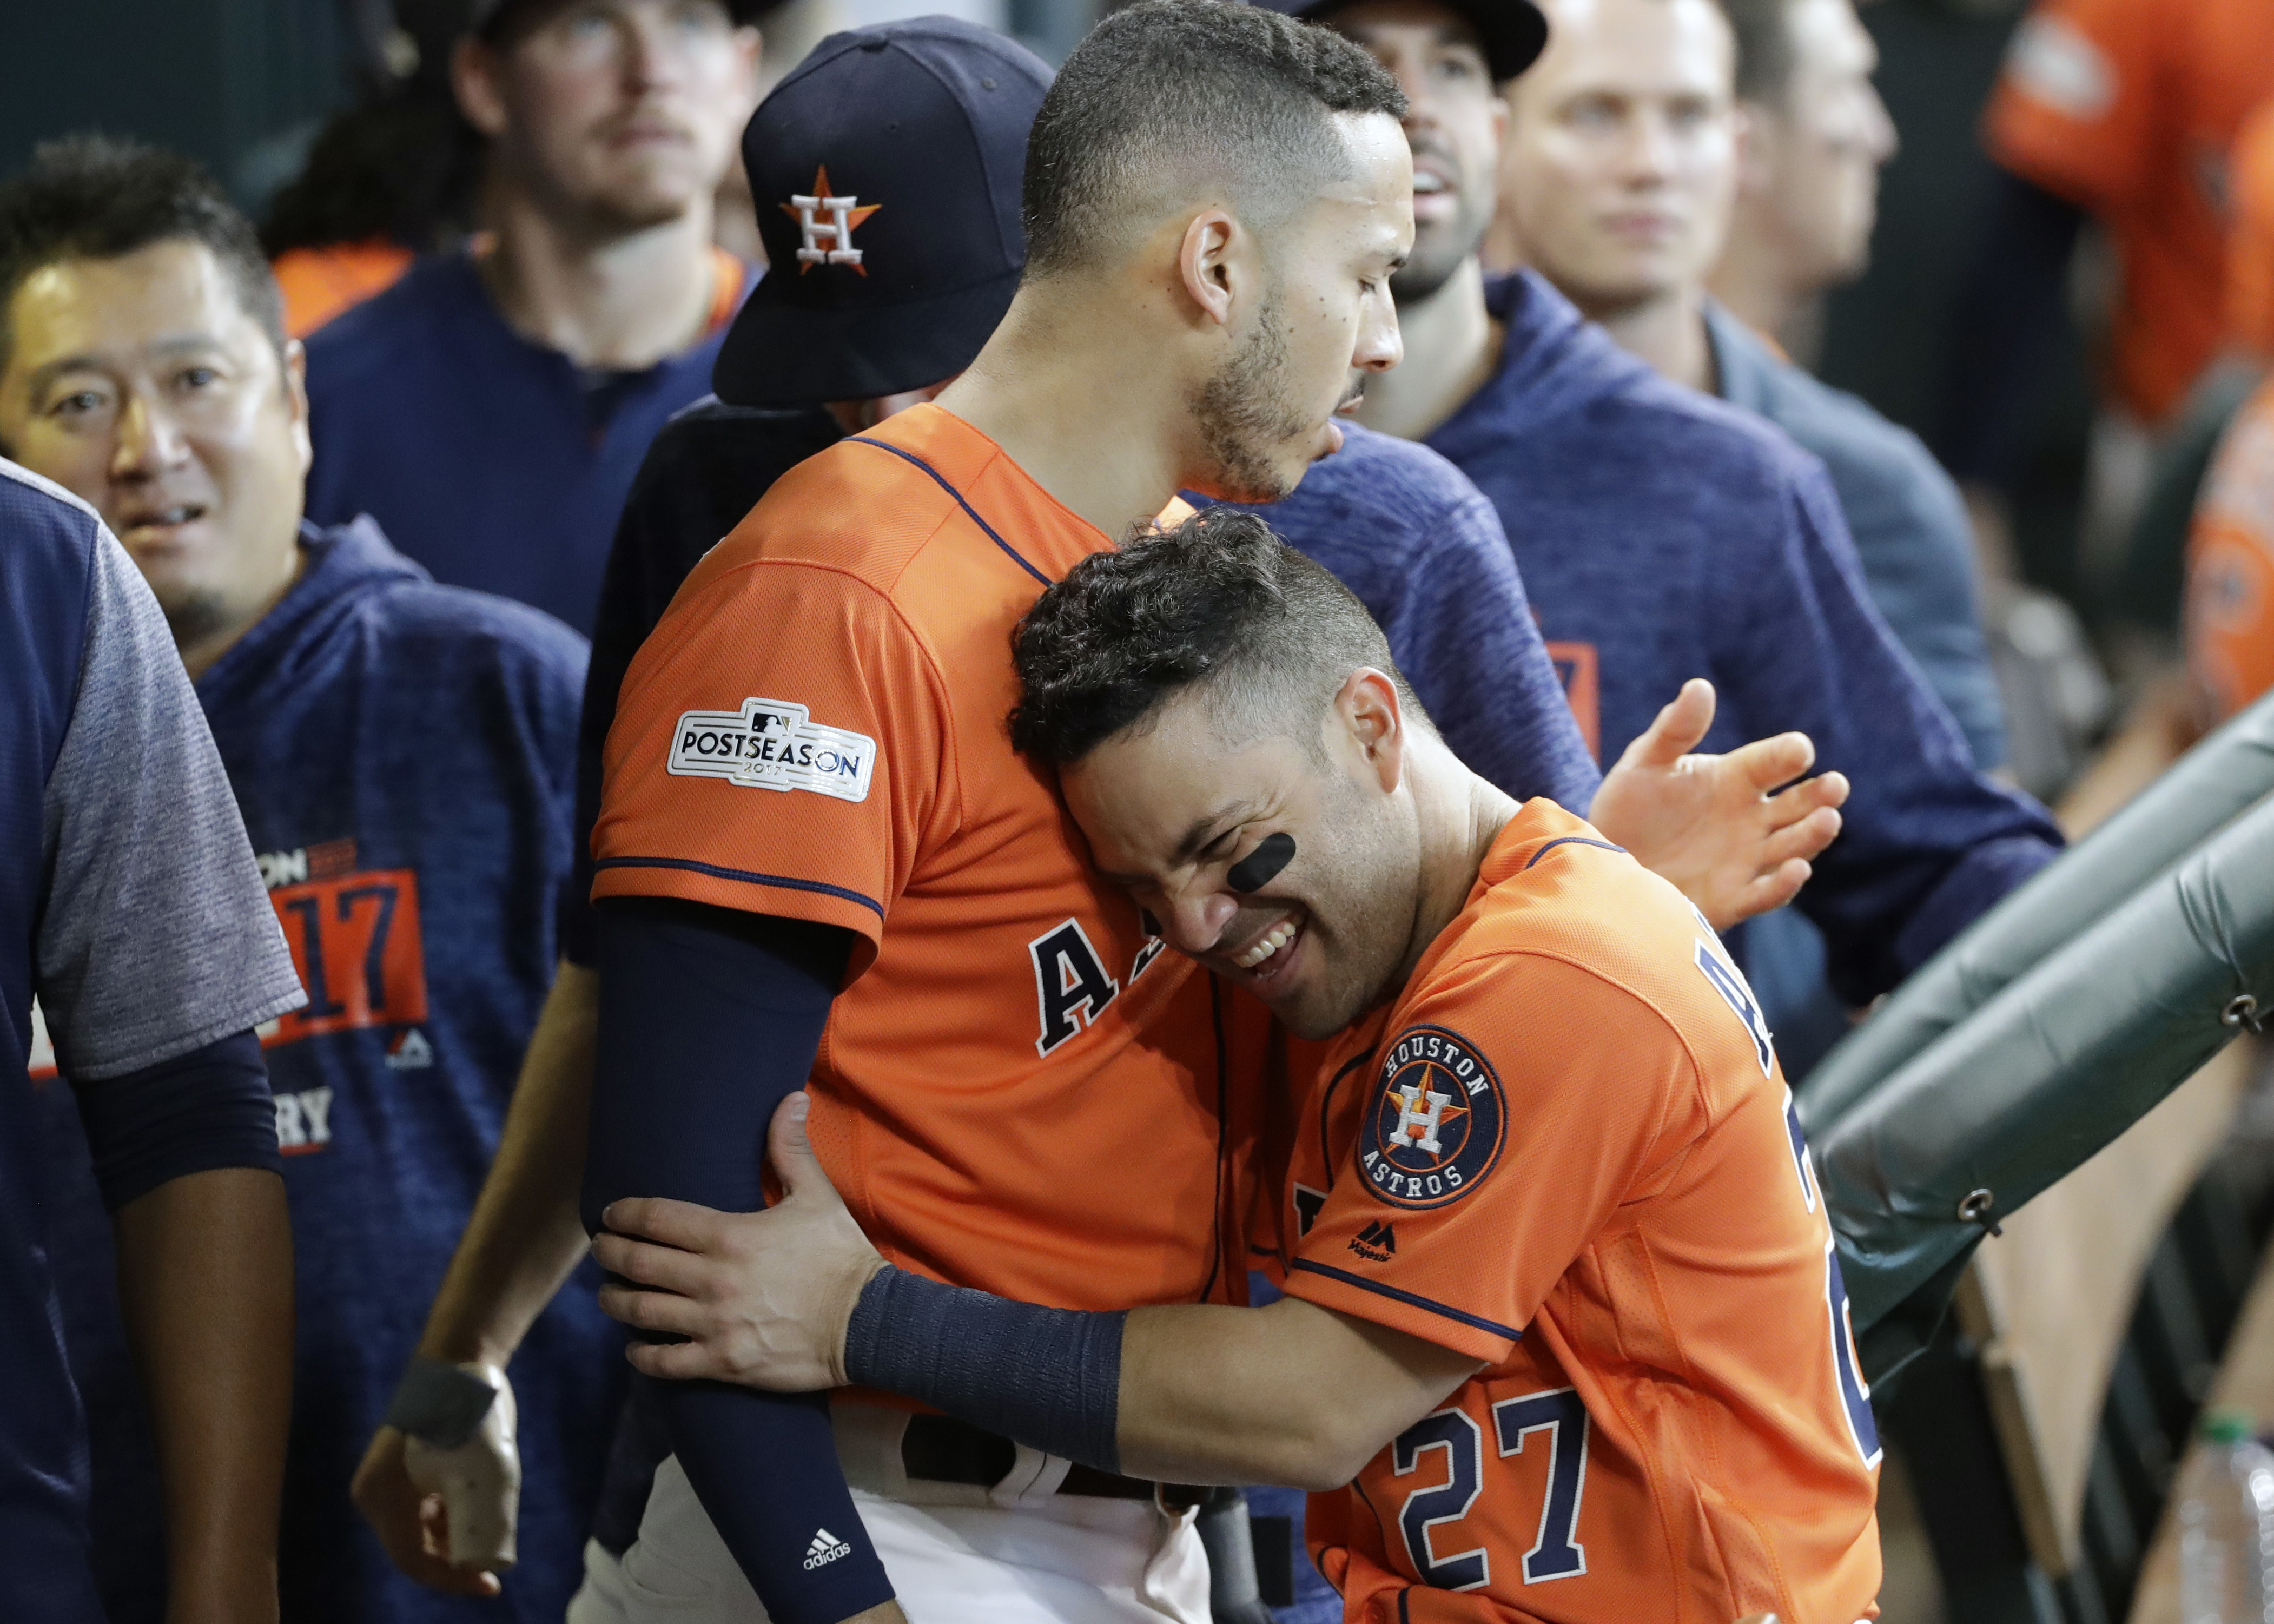 <div class='meta'><div class='origin-logo' data-origin='AP'></div><span class='caption-text' data-credit='David J. Phillip'>Houston Astros' Jose Altuve (27) celebrates with George Springer (4) after they scored on teammate Carlos Correa's double in Game 2.</span></div>